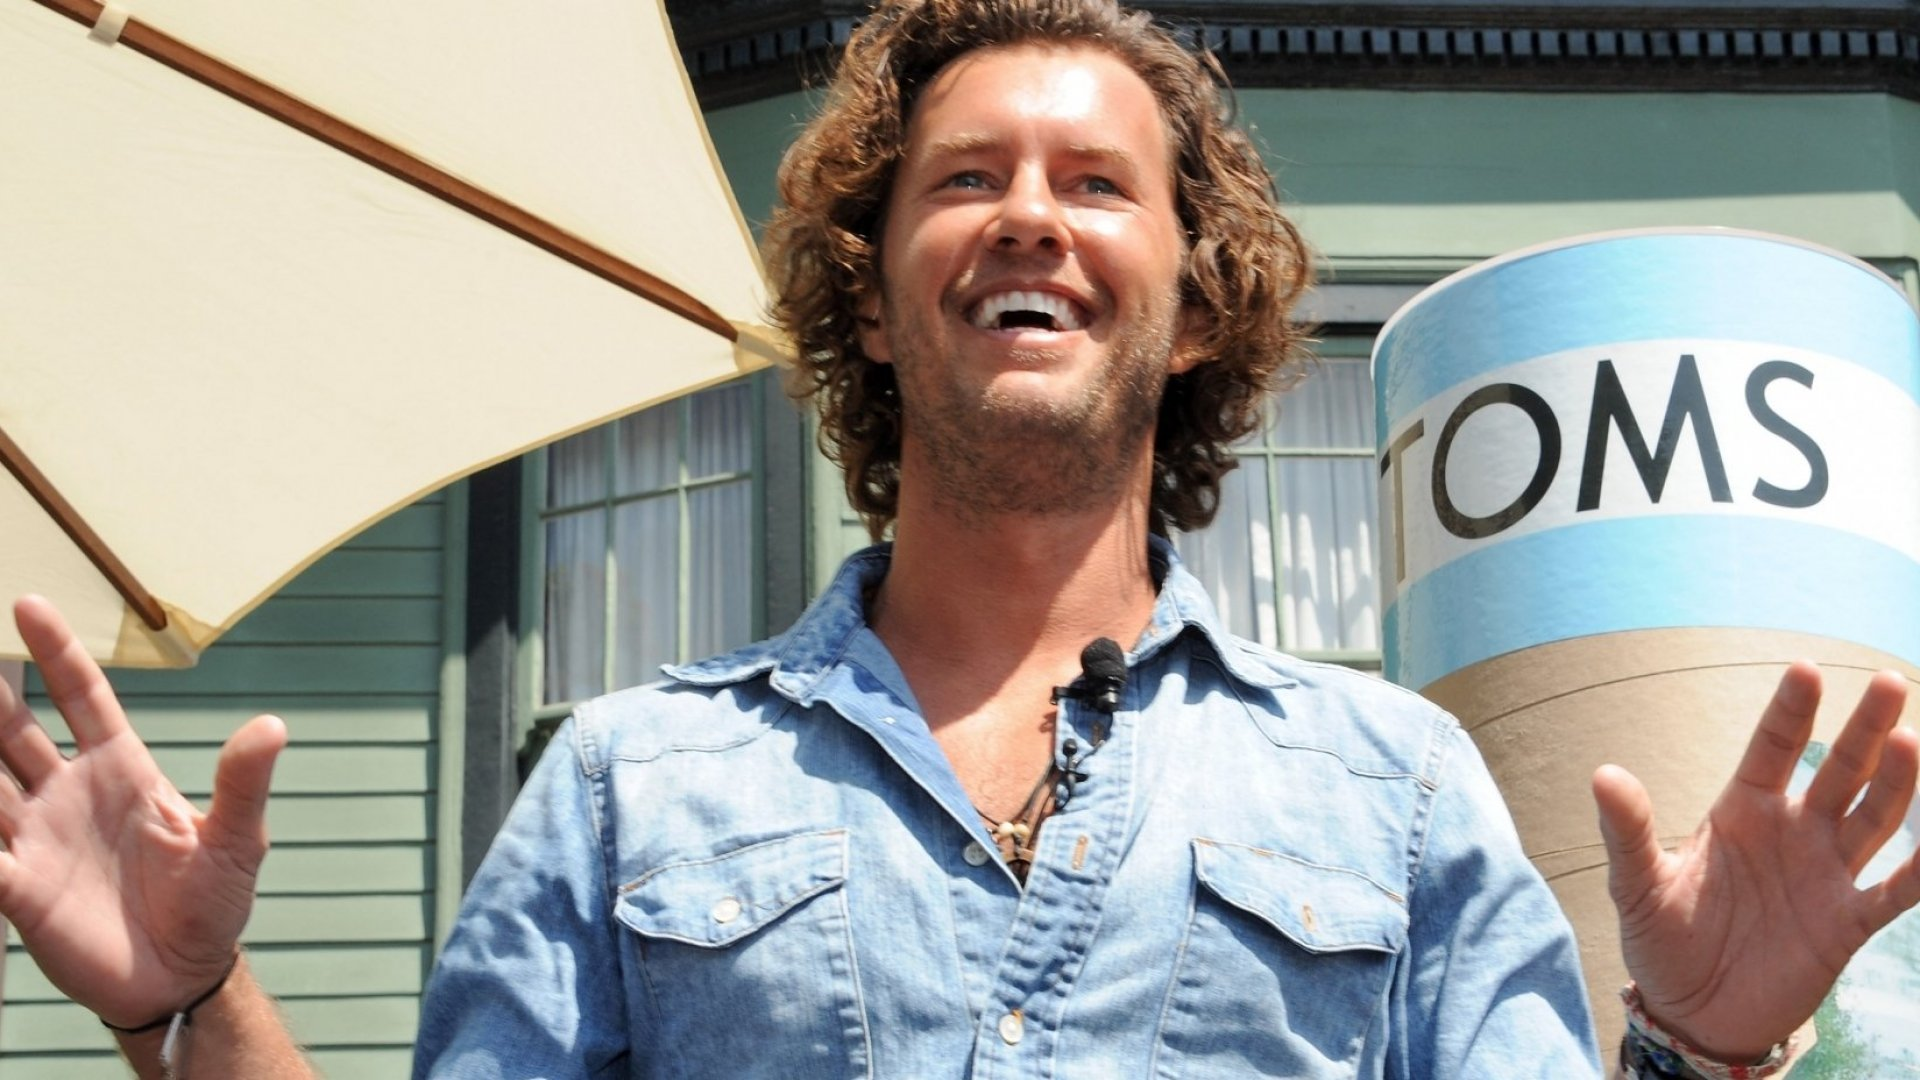 TOMS Founder Blake Mycoskie Gets Another Star Turn in a Nationwide Ad